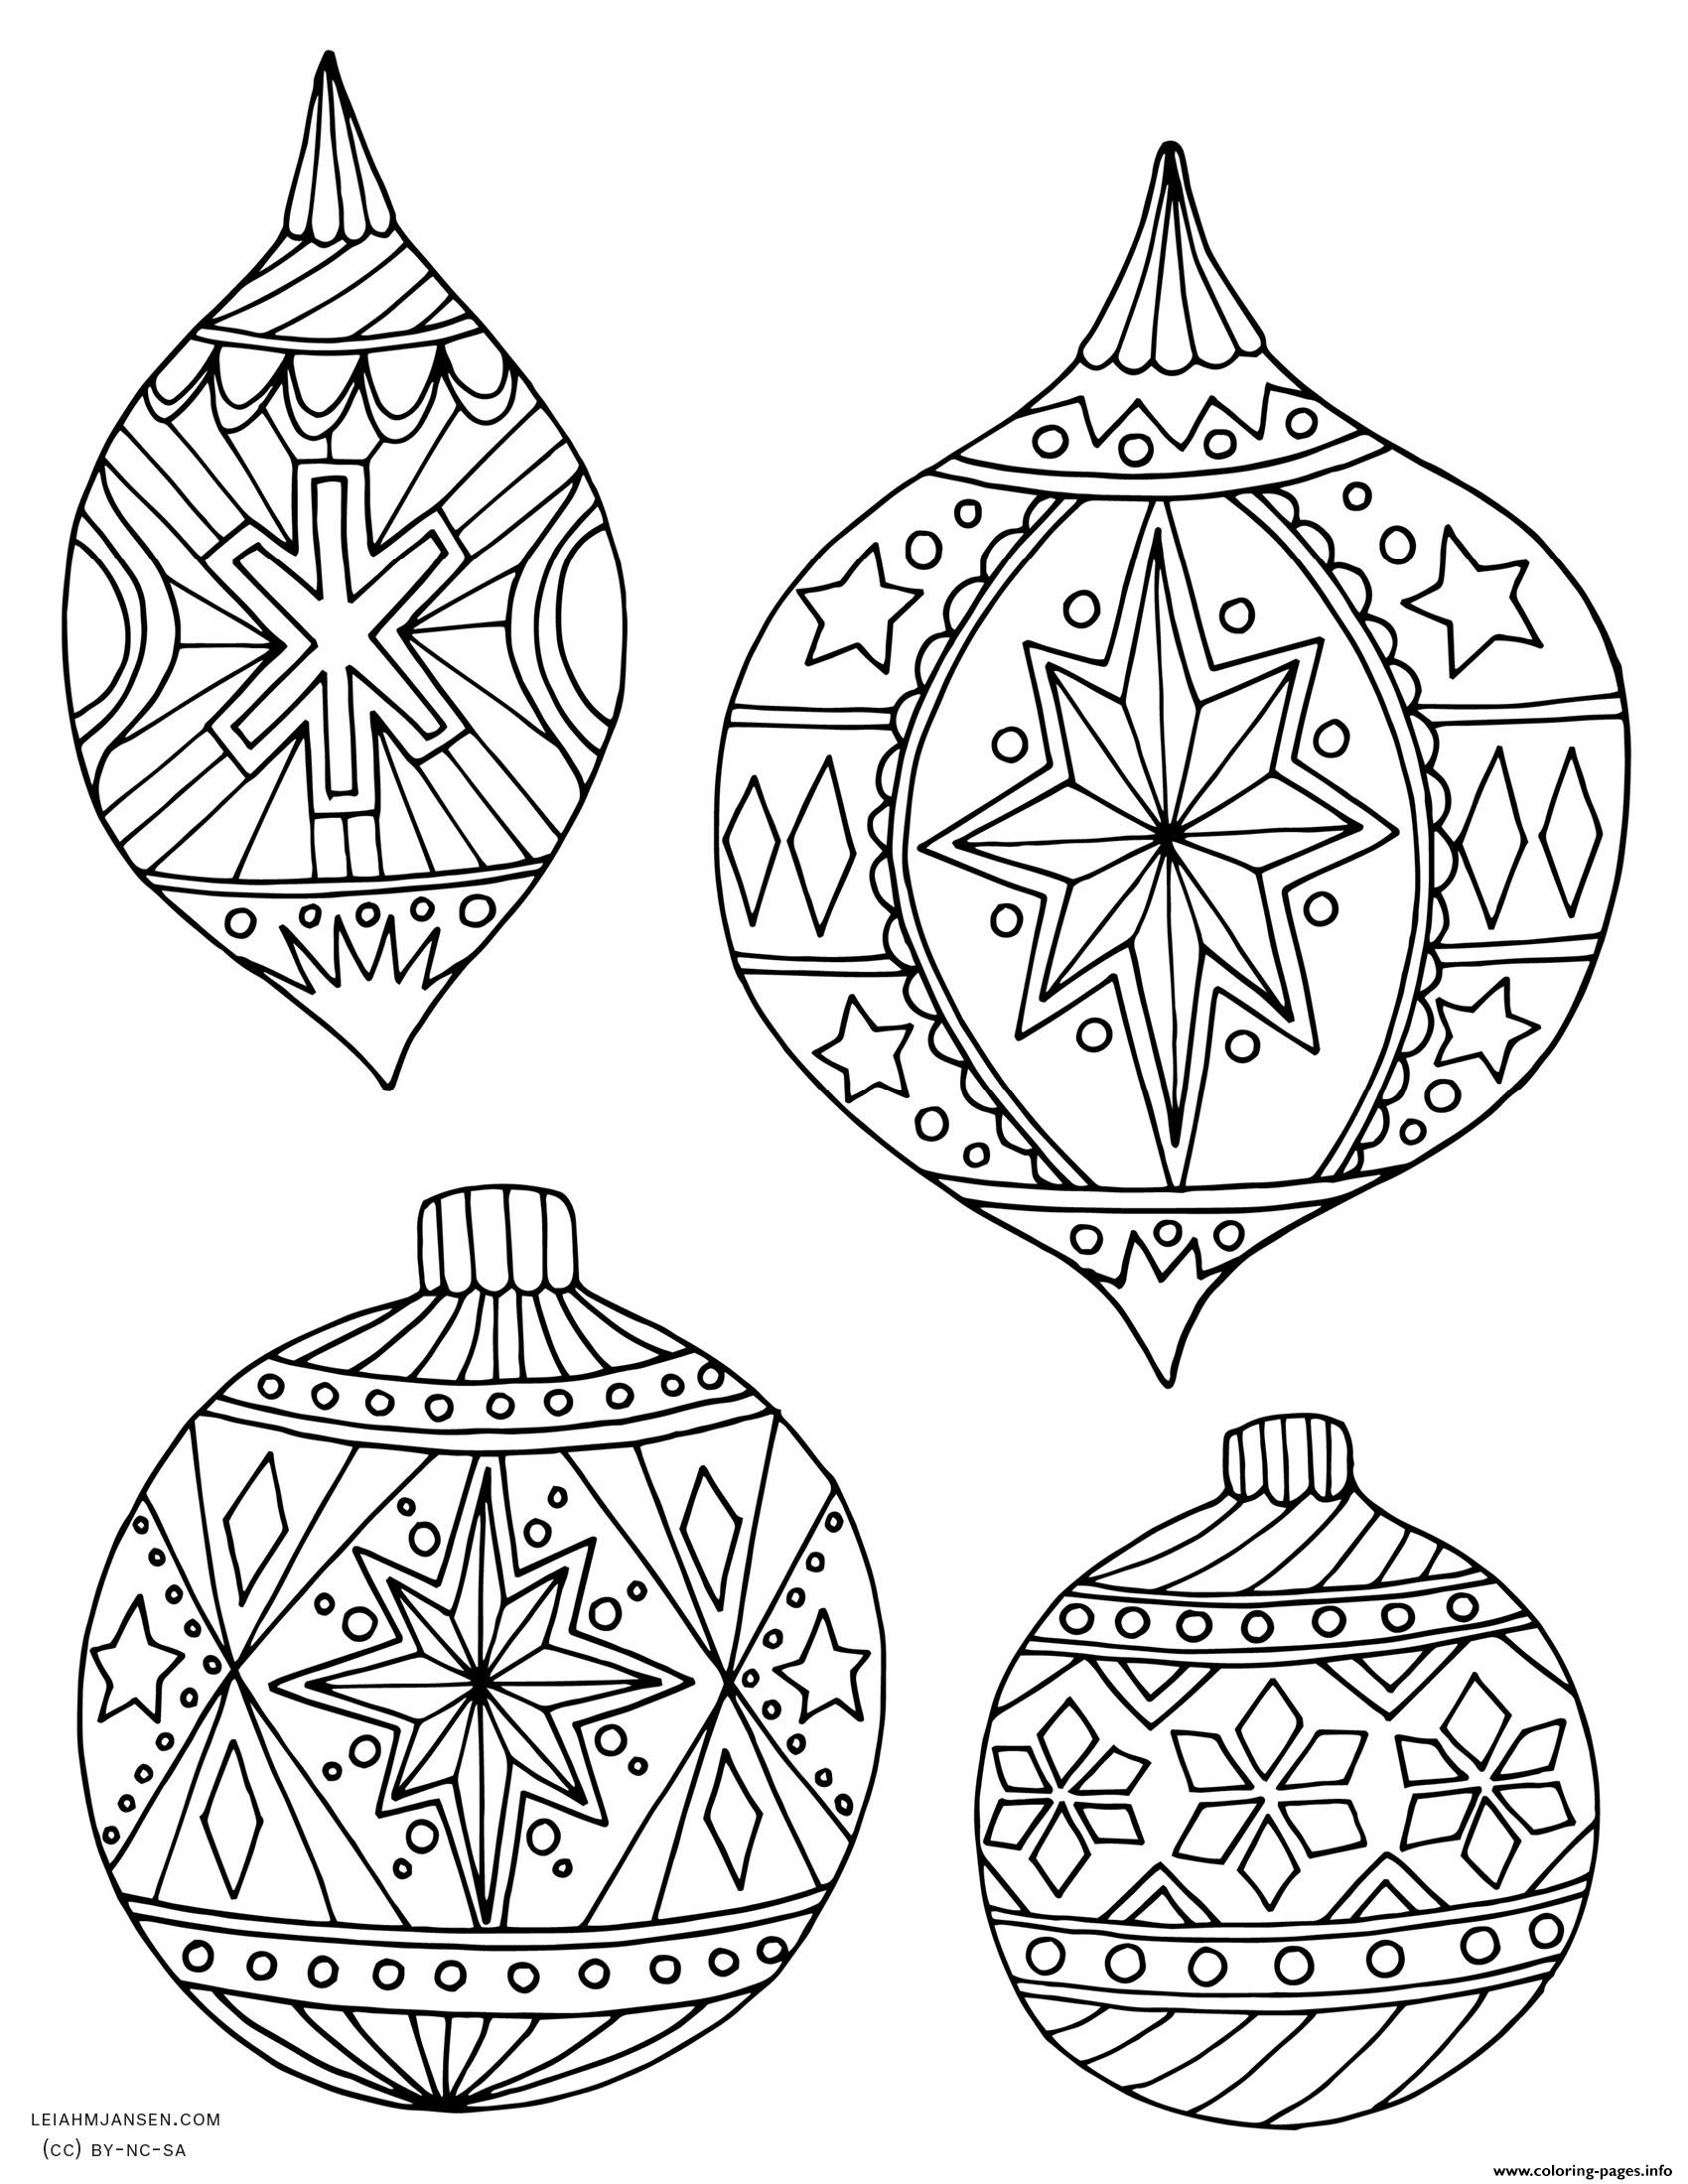 ornament printable coloring pages - photo#26